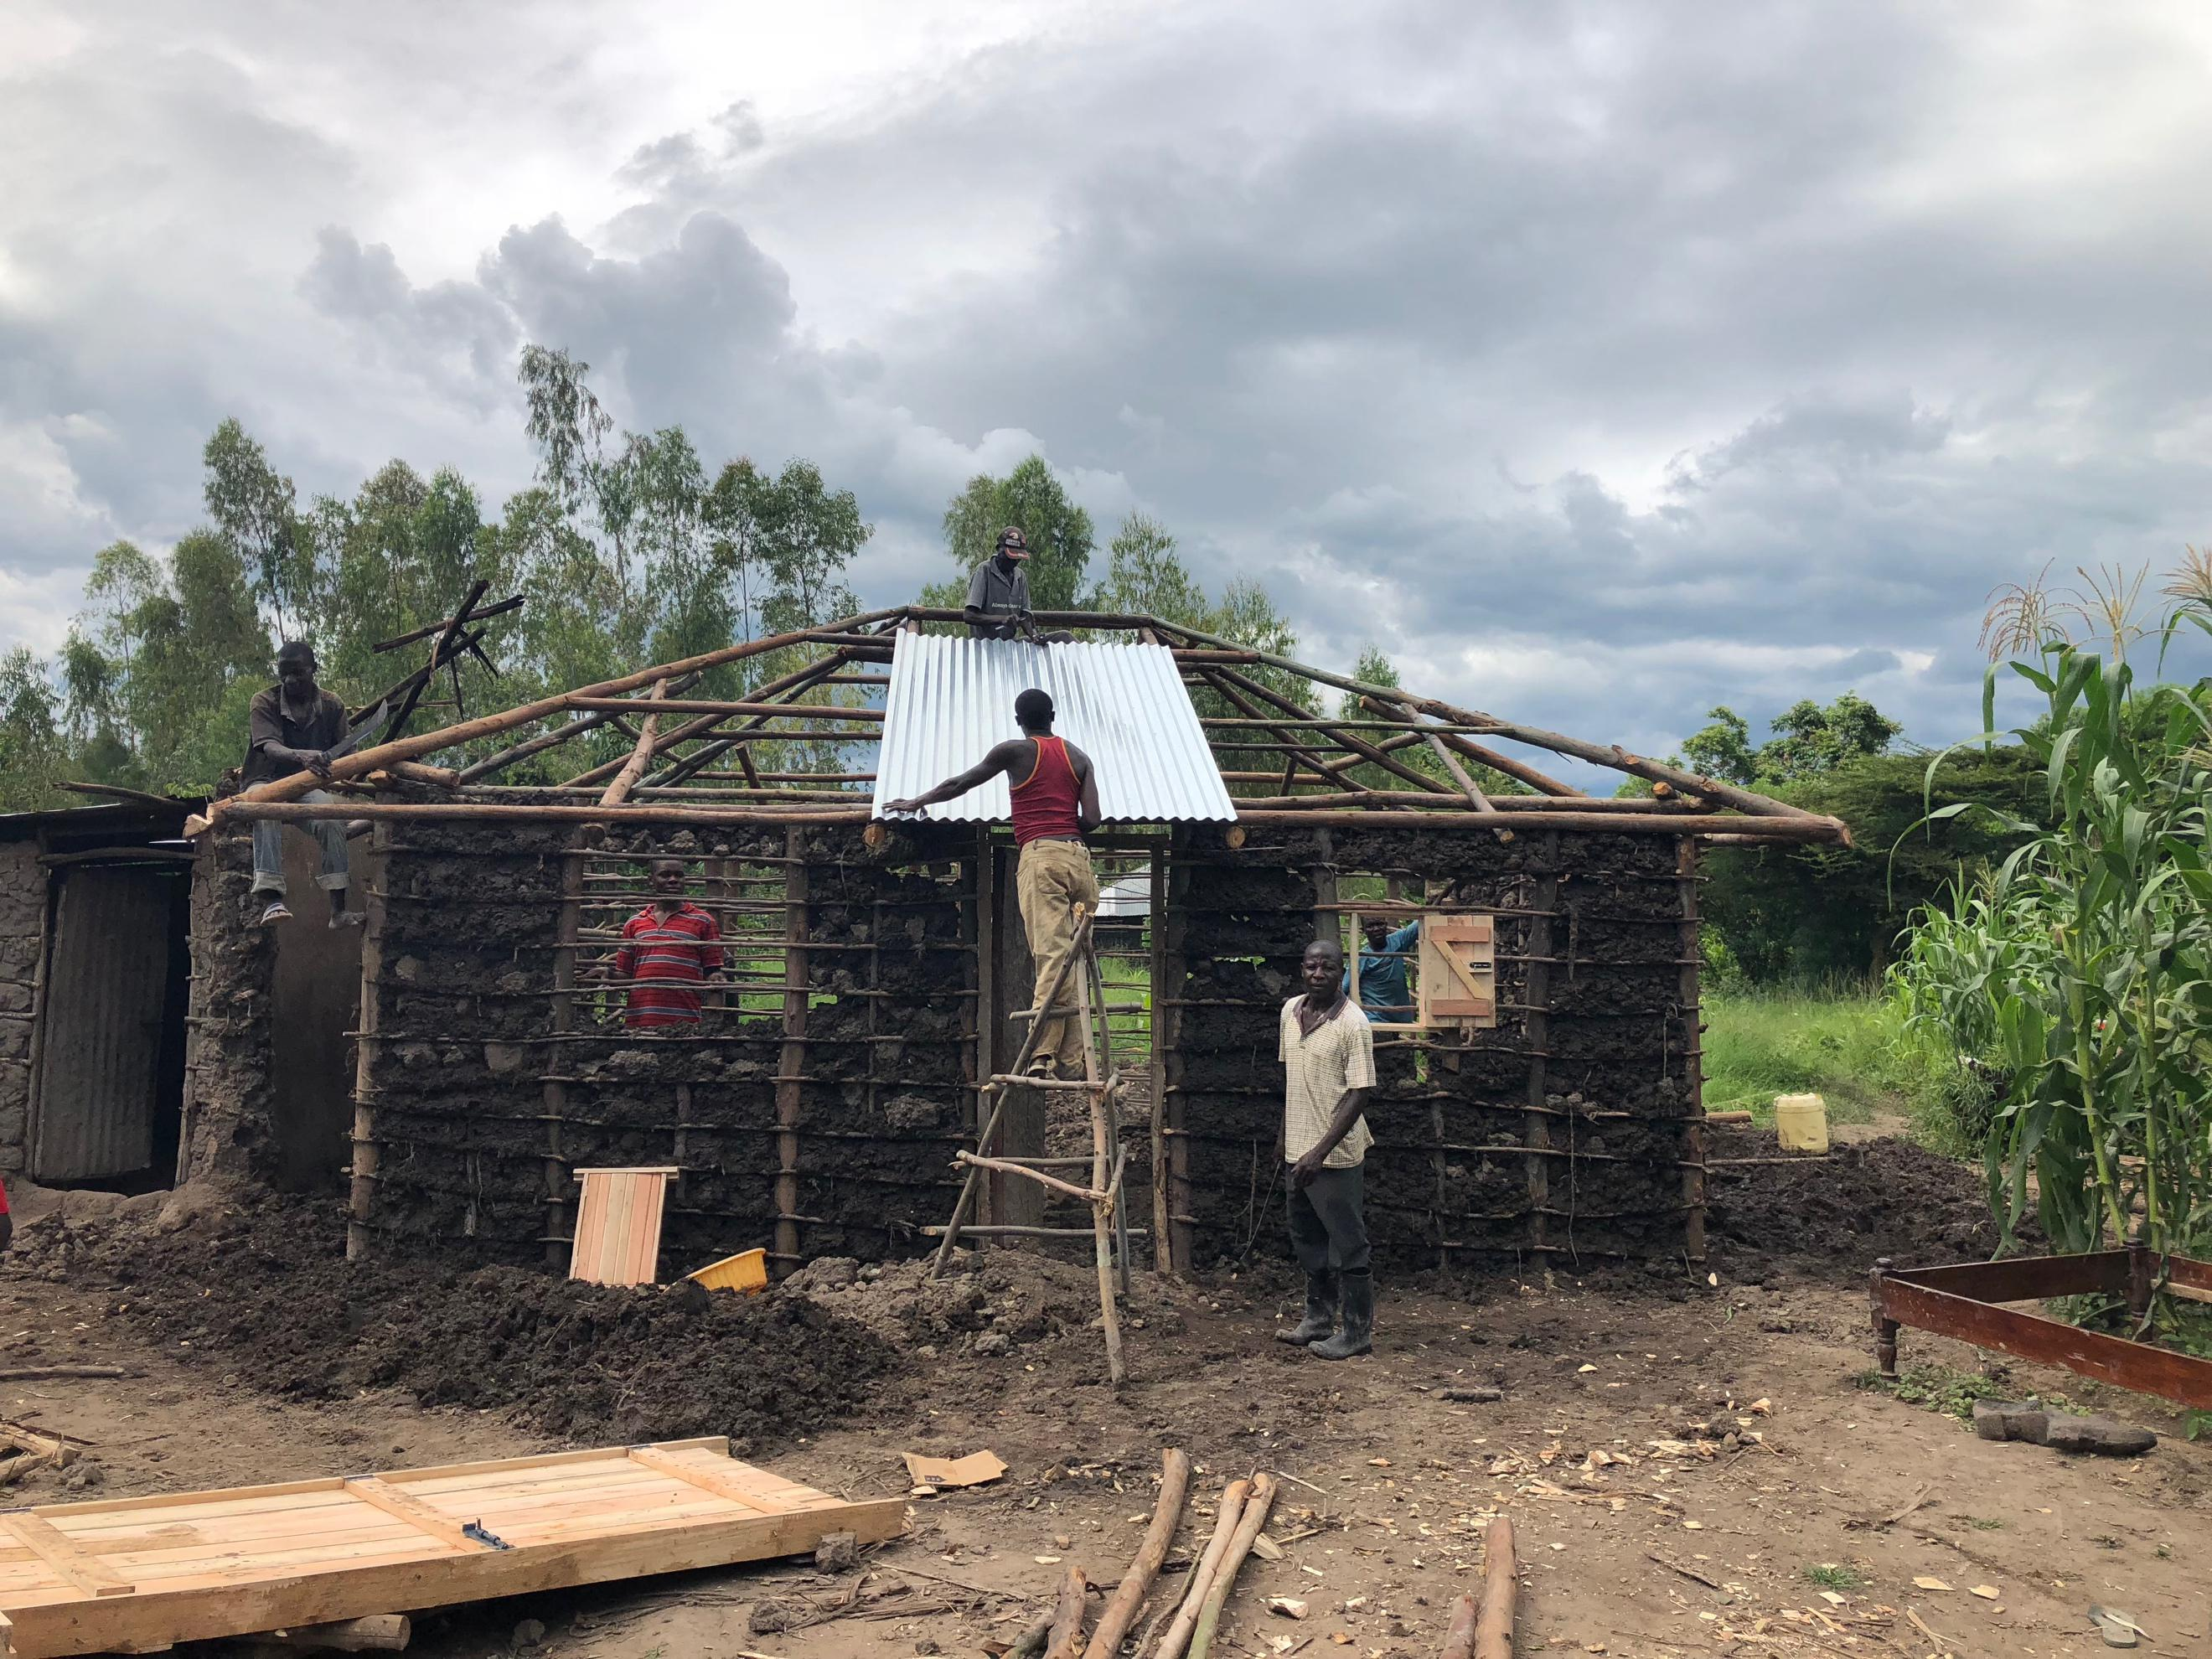 Constructing the house for Wilfrida